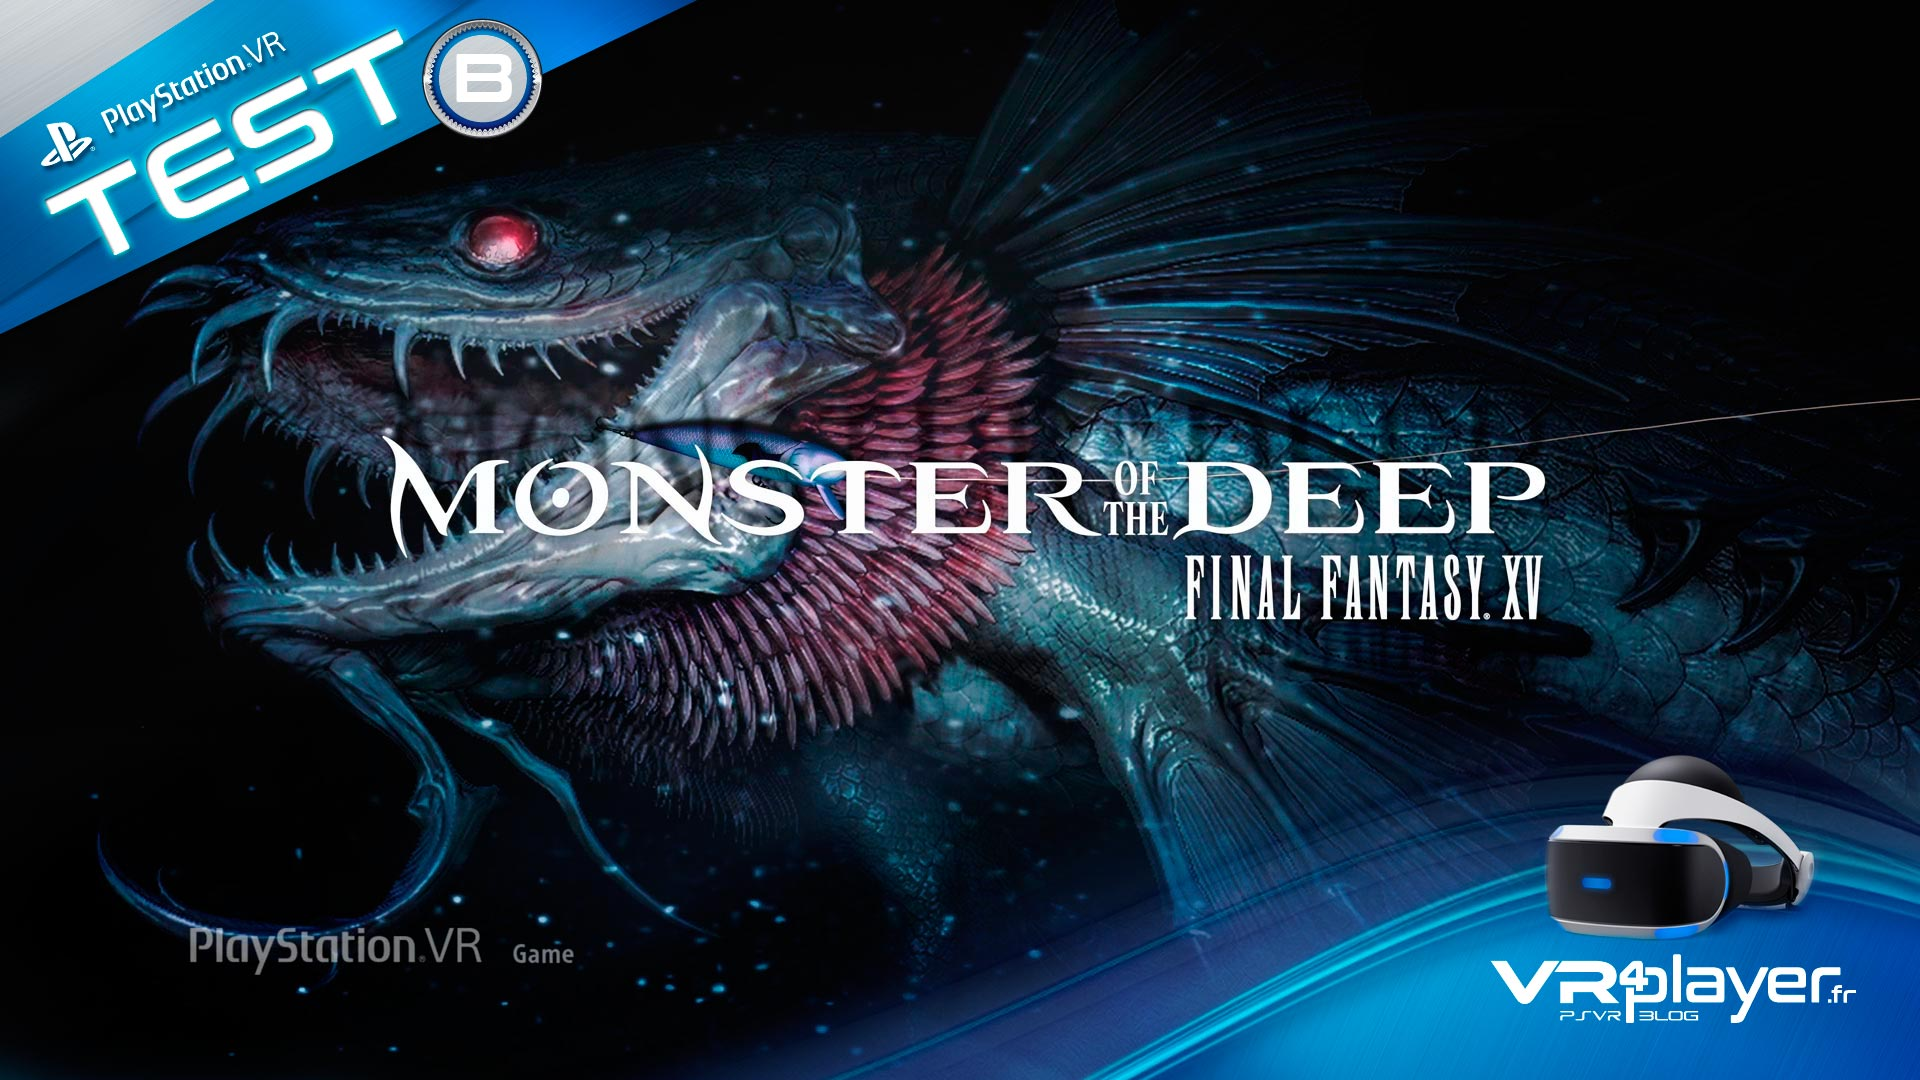 Monster Of The Deep Test Review VR4player